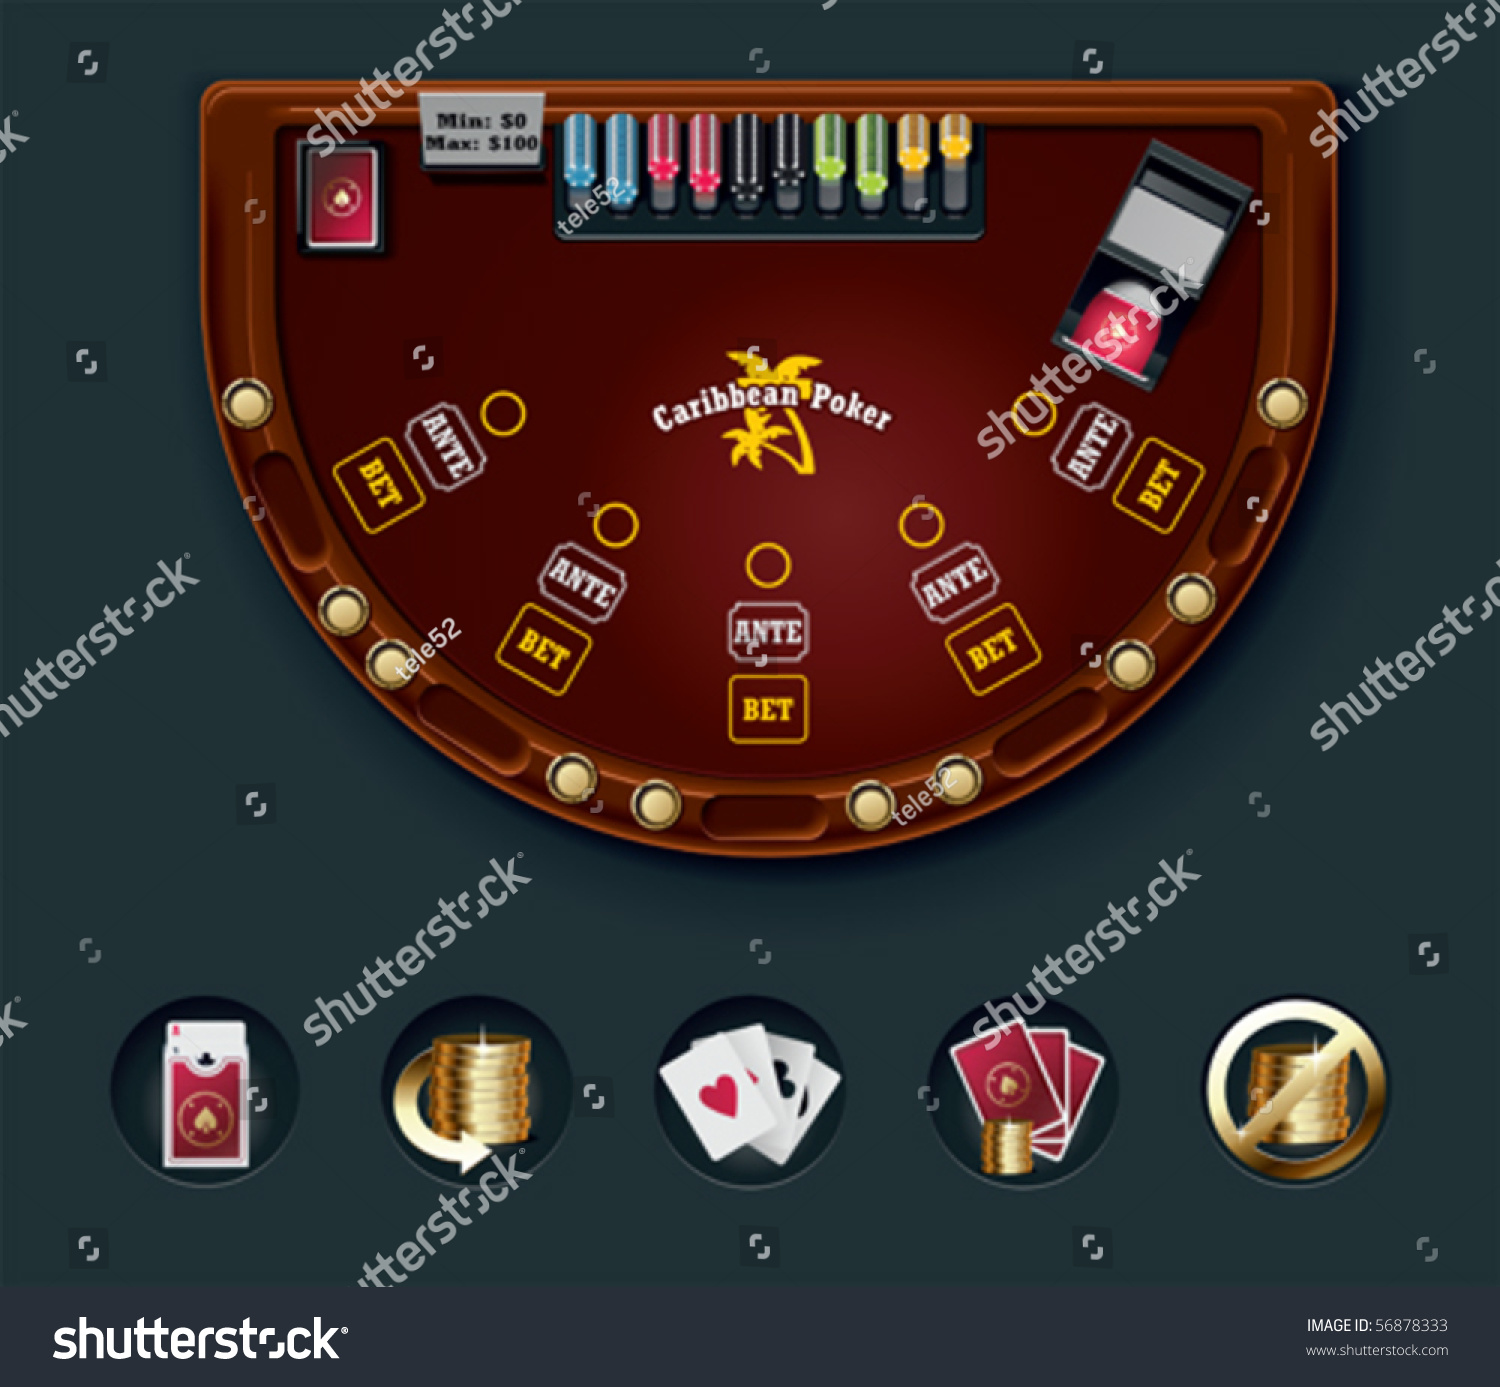 Poker table layout